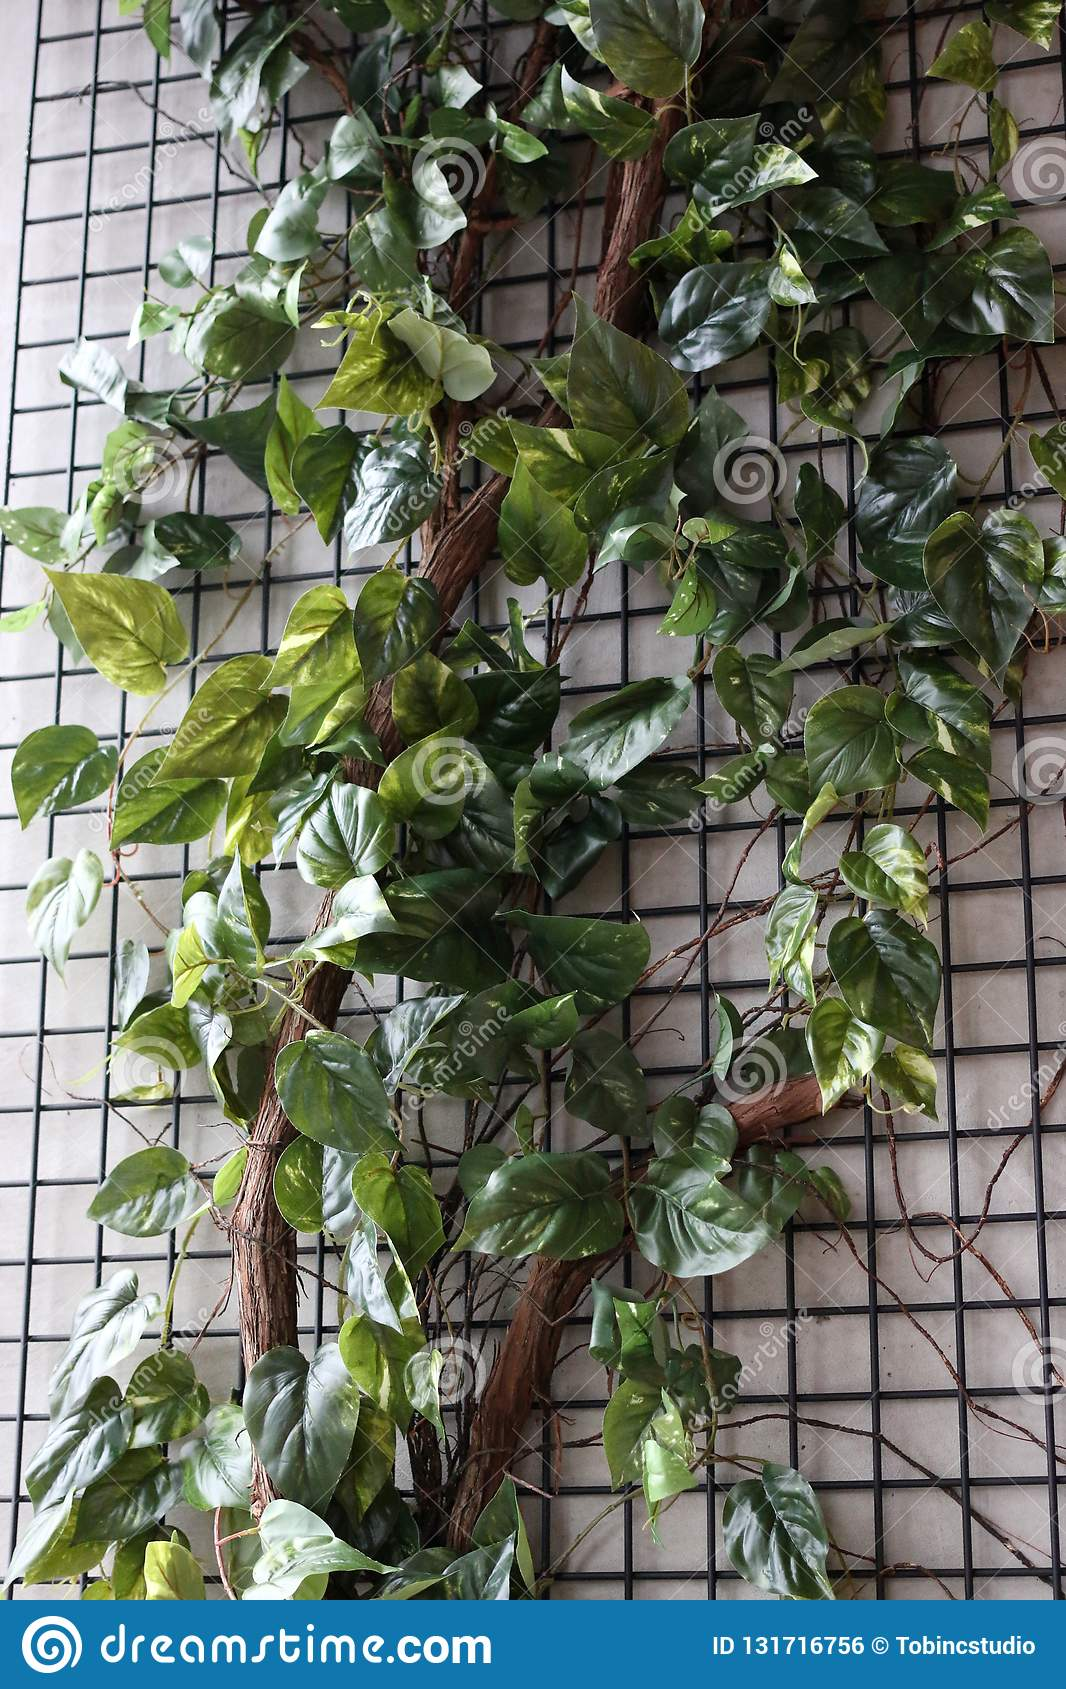 Climbing Ivy Vines On A Wall Stock Photo , Image of long